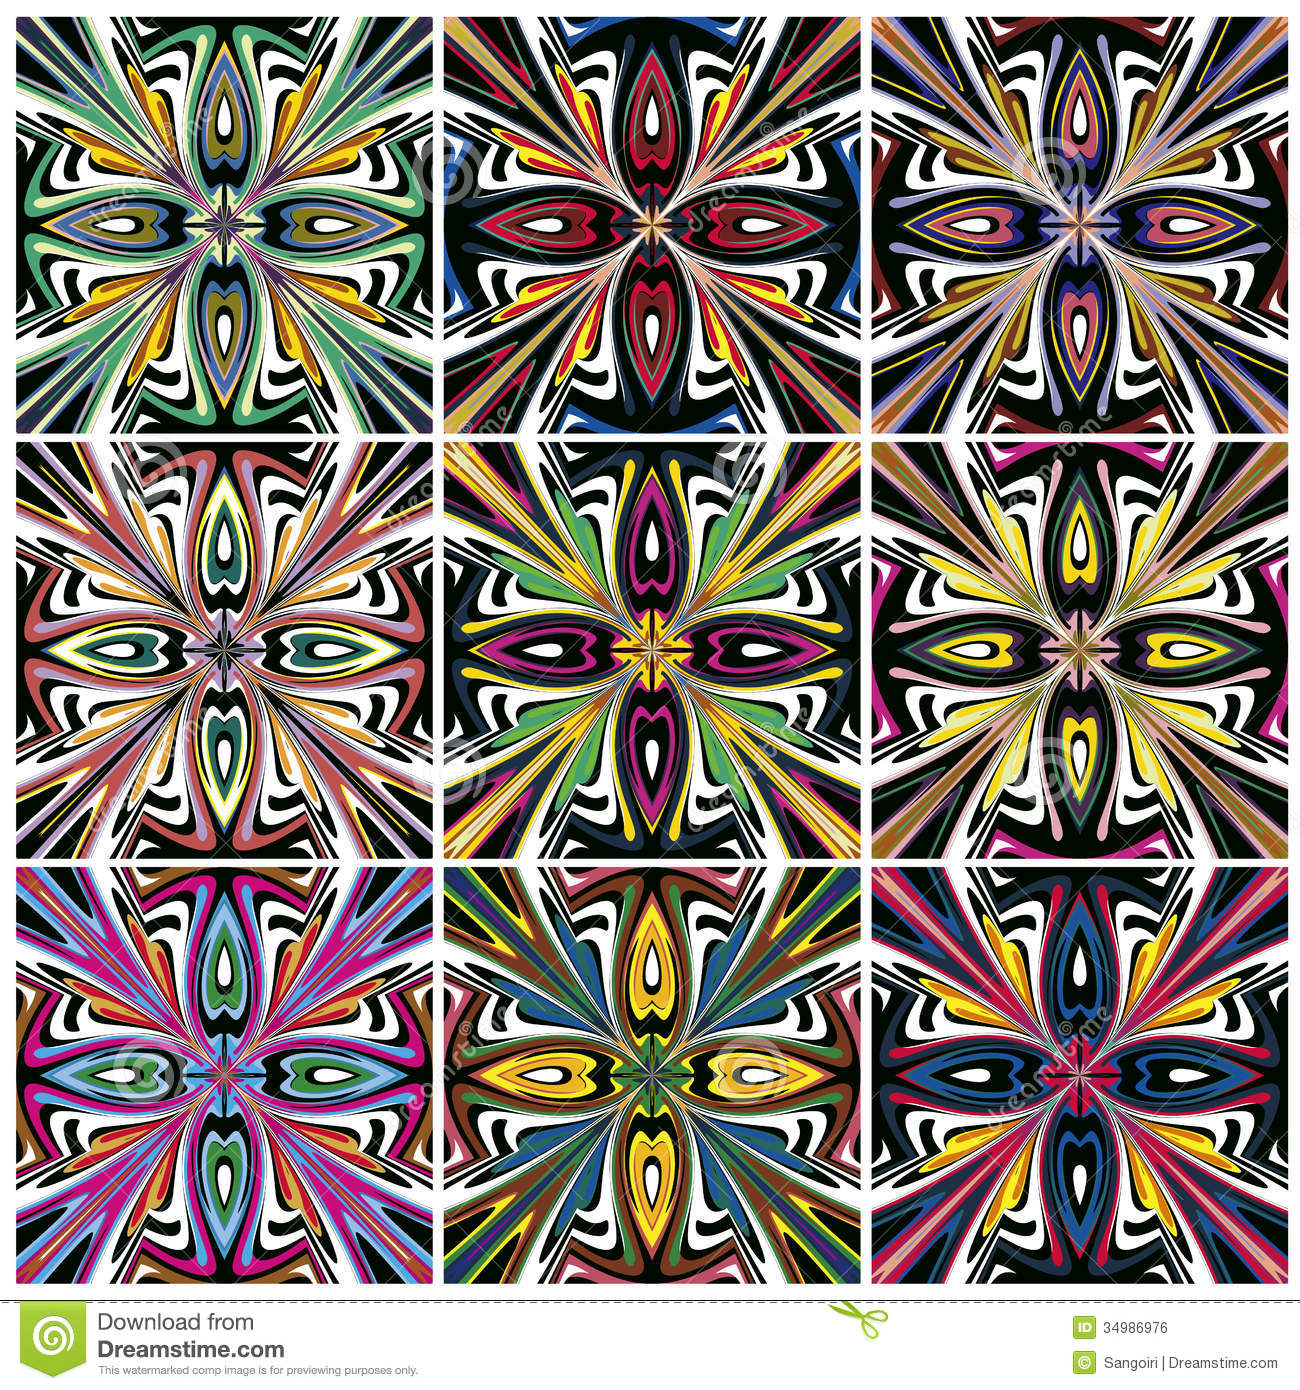 Native american patterns royalty free stock image image for Native design